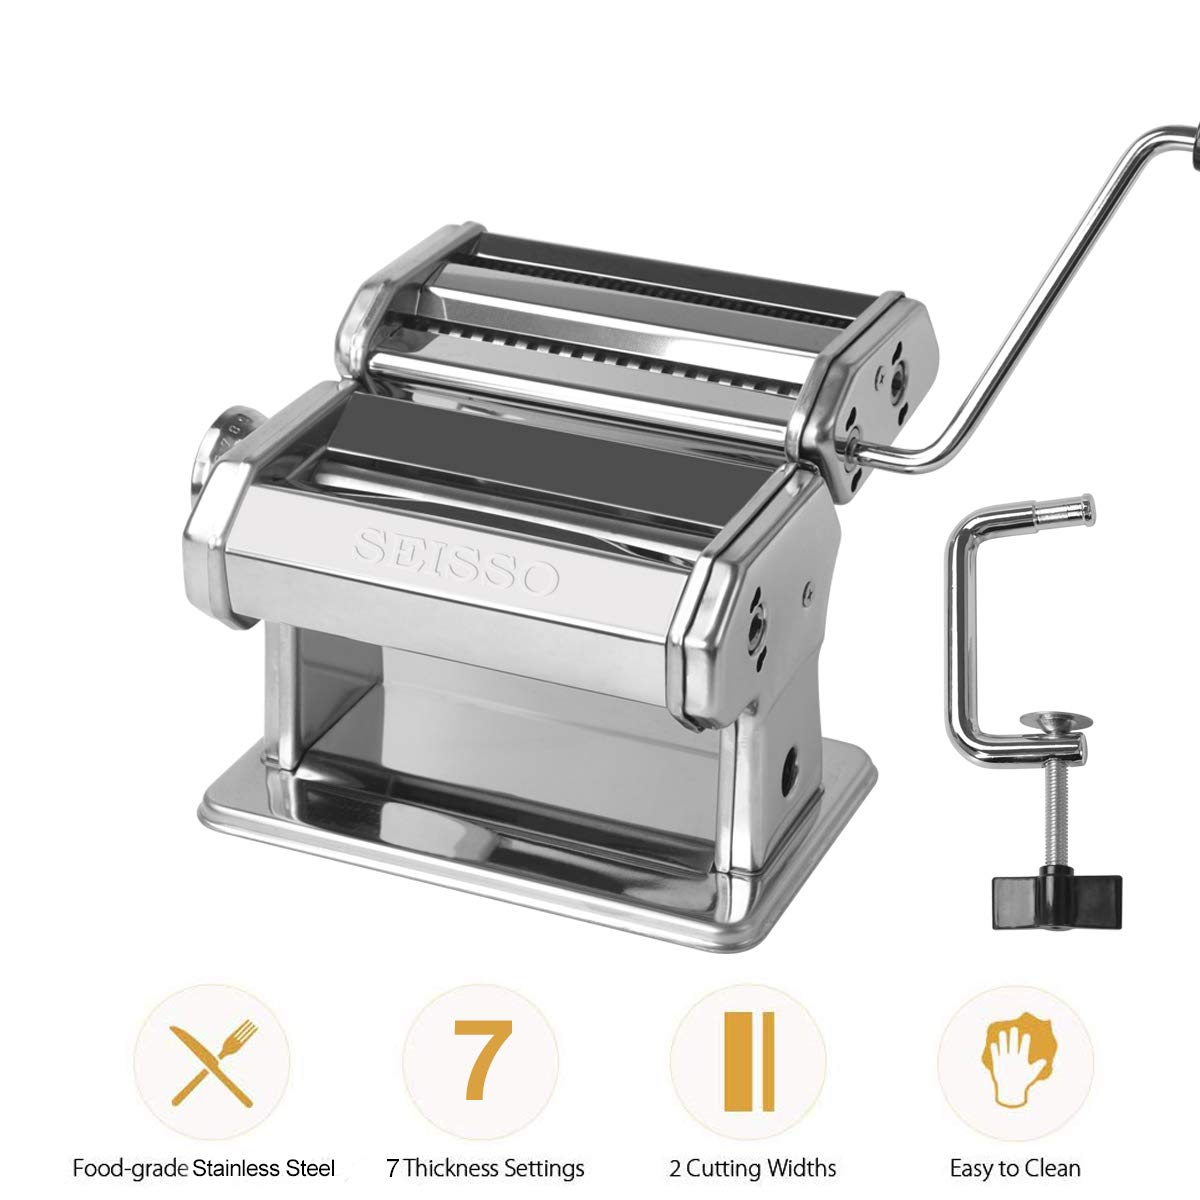 Pasta Maker, Manual Hand Crank Pasta Machine, Washable Stainless Steel Noodle Maker with 7 Adjustable Thickness Settings, Homemade for Spaghetti, Linguine, Bigoli, Trenette by SEISSO